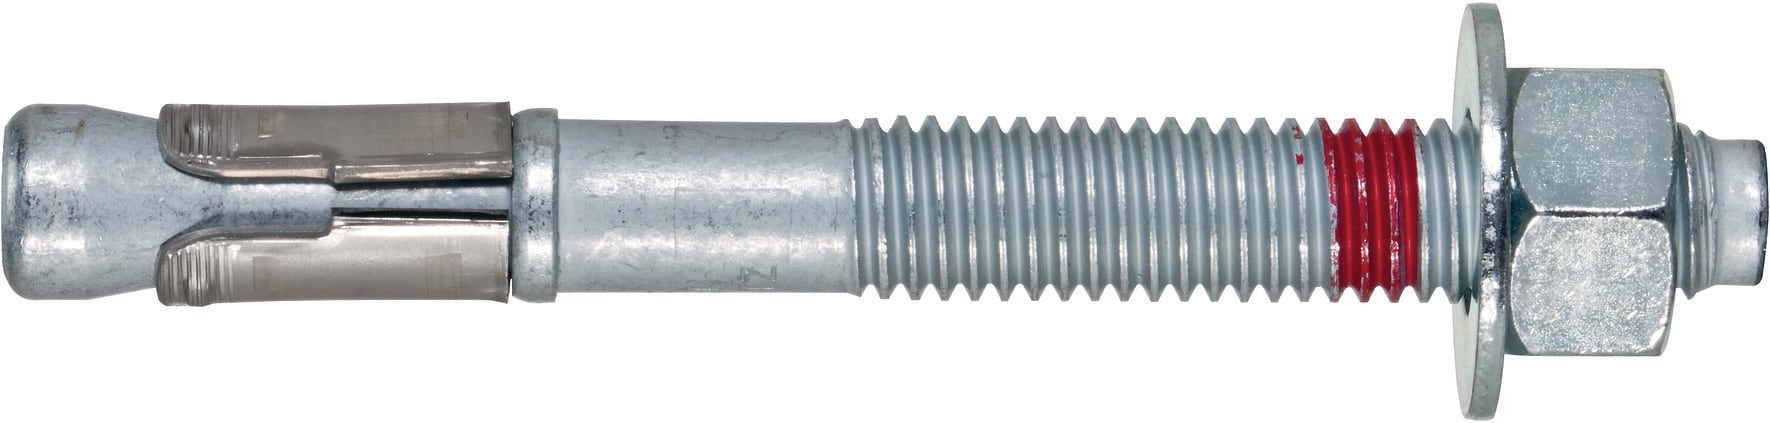 x 5-1//2 In Kwik Bolt 3 Long Thread Carbon Steel Expansion Anchors Hilti 3//4 In